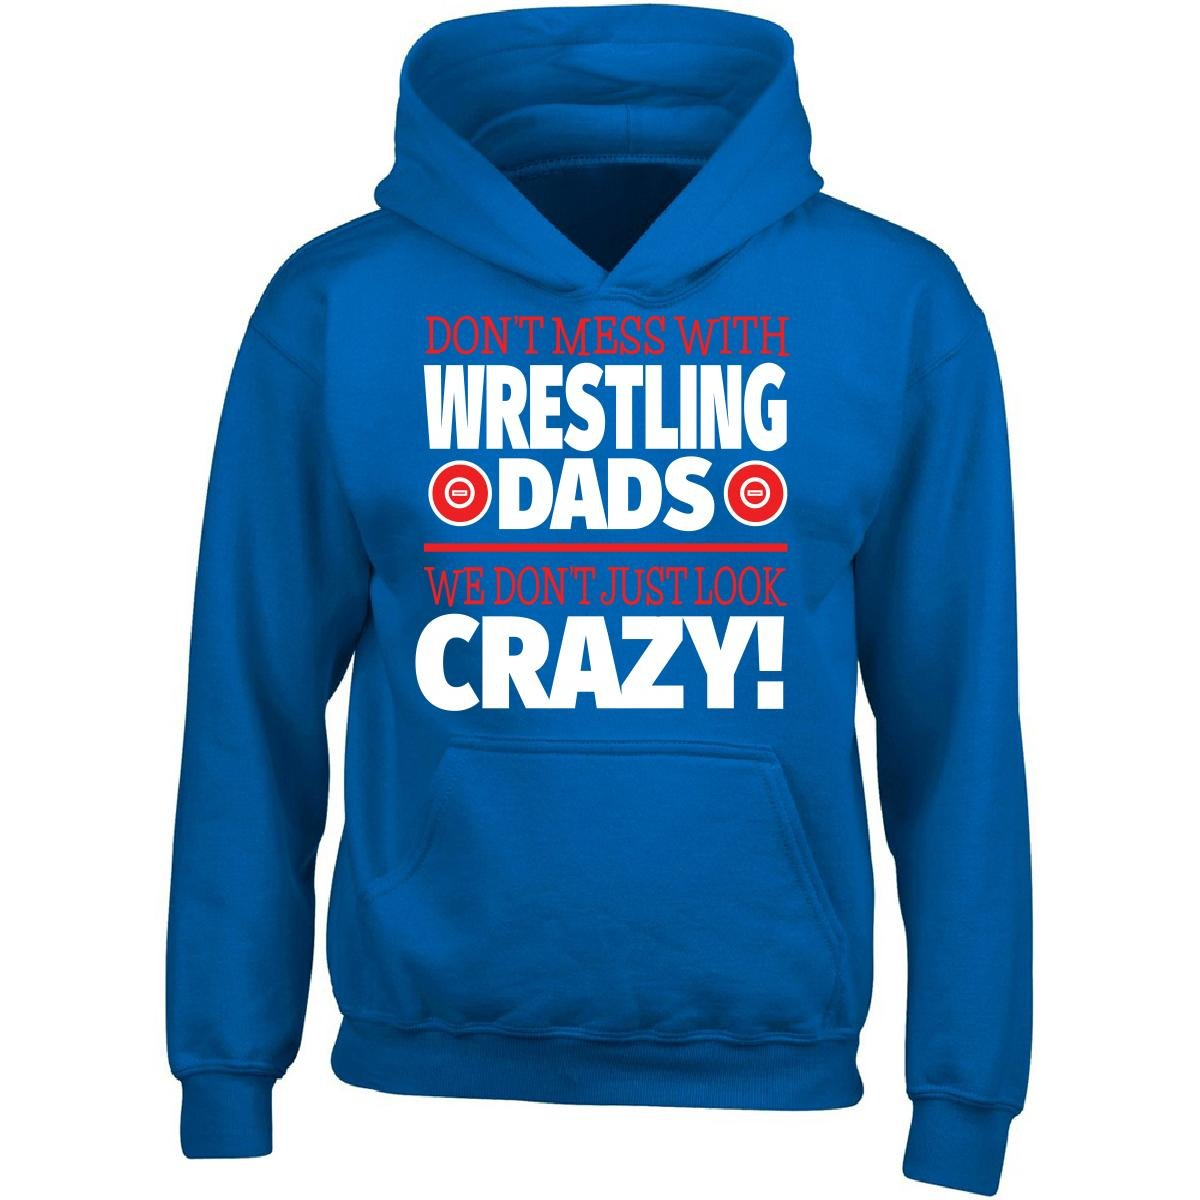 Crazy Wrestling Family - Don't Mess With Wrestling Dads - Adult Hoodie 2XL Royal